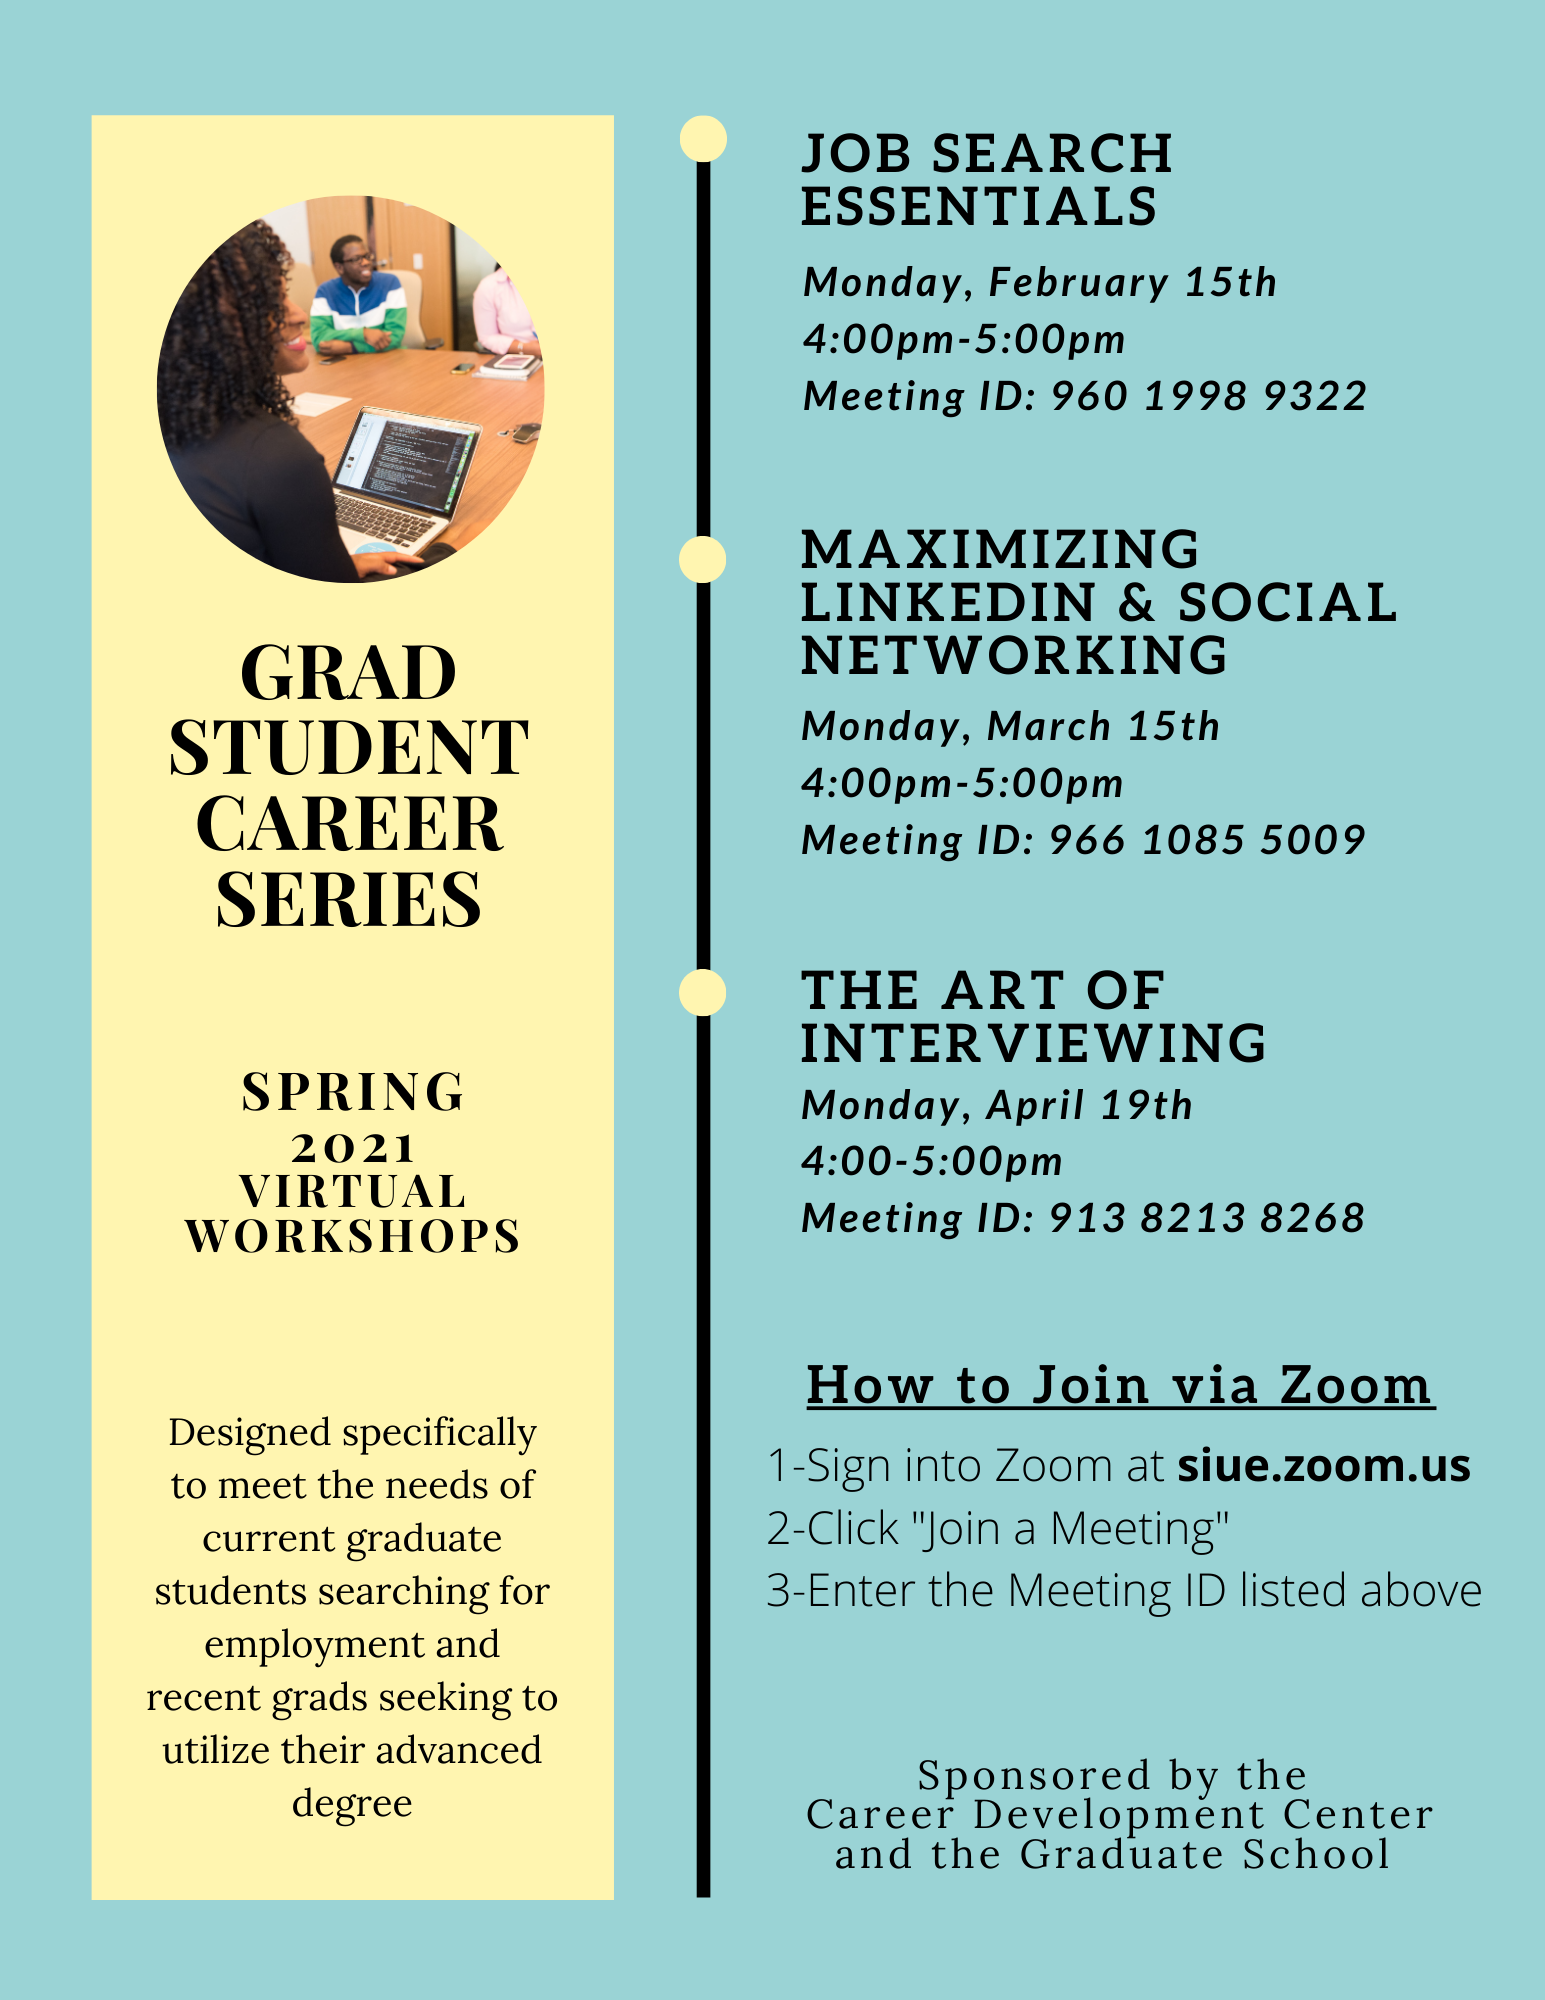 Siue Spring 2021 Calendar GradNews January 2021 Welcome to GradNews! In the Know